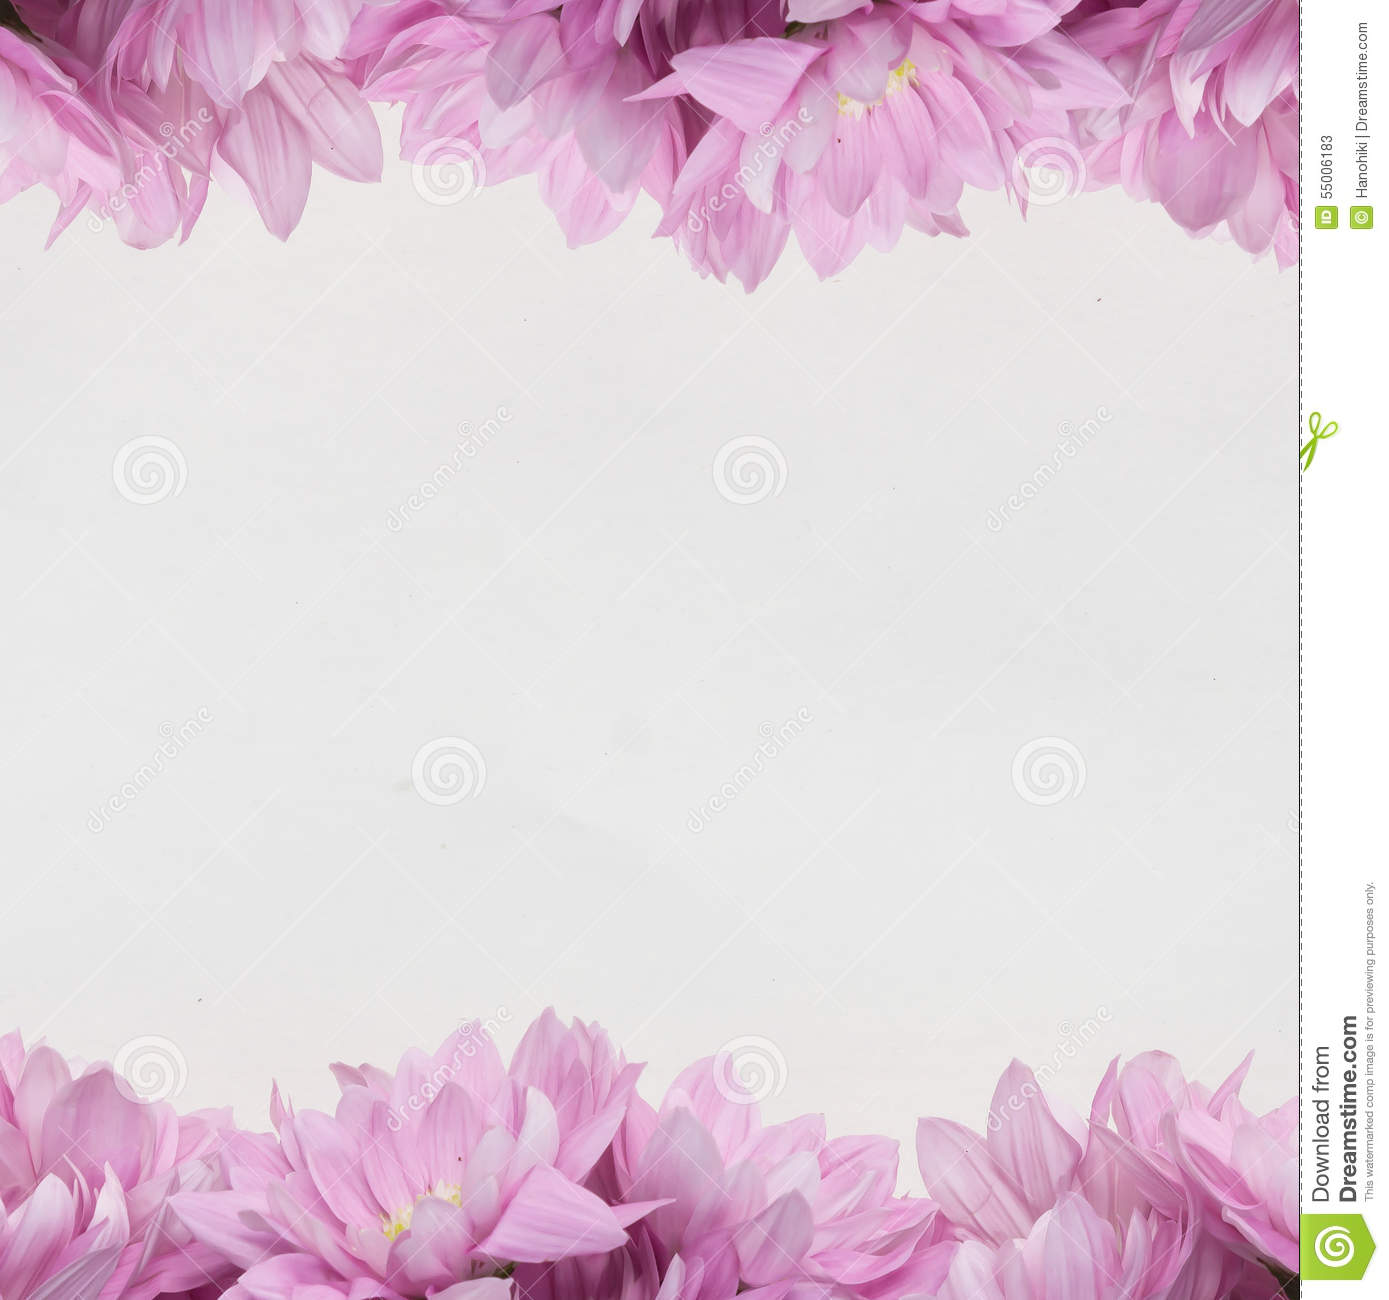 Flower design frame theme with pink flowers stock illustration download comp mightylinksfo